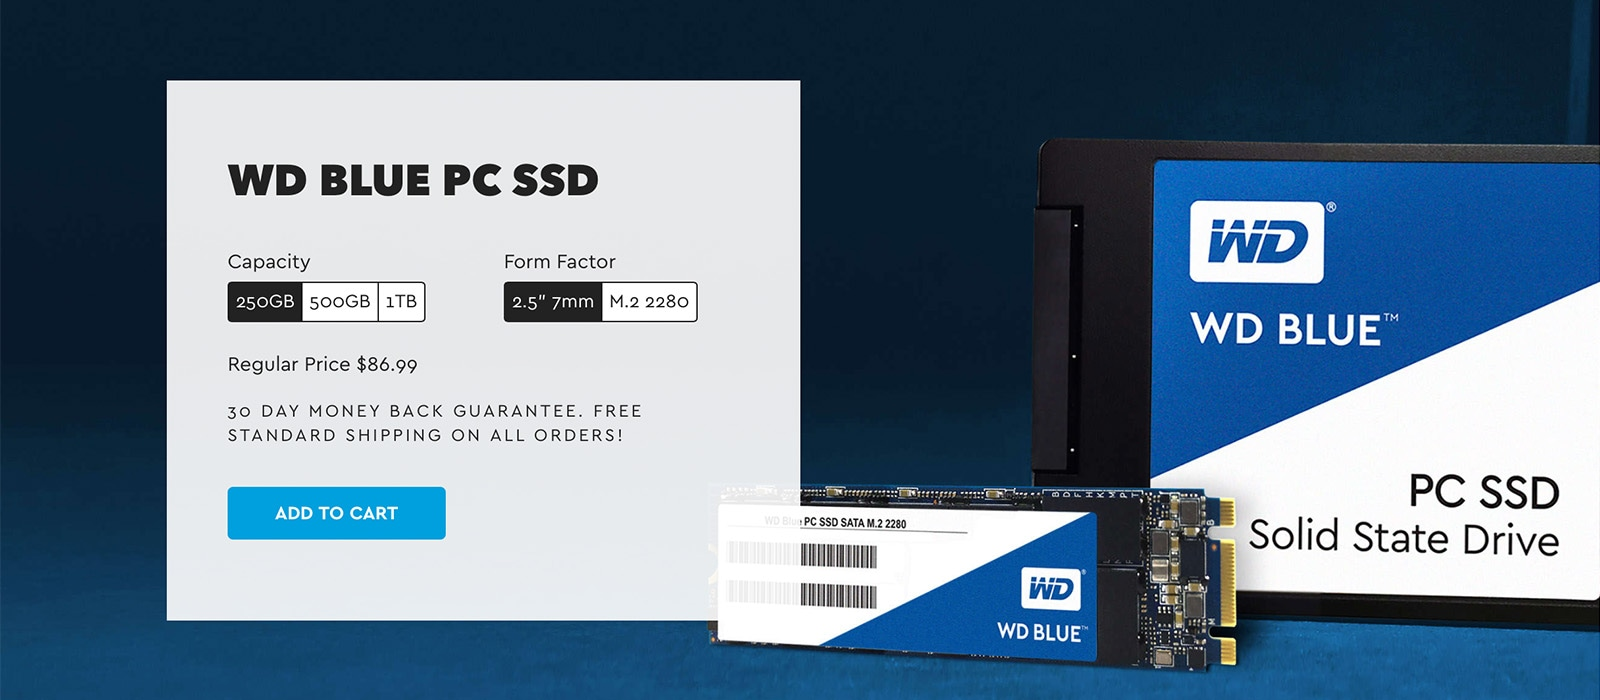 Western Digital WD Blue PC SSD